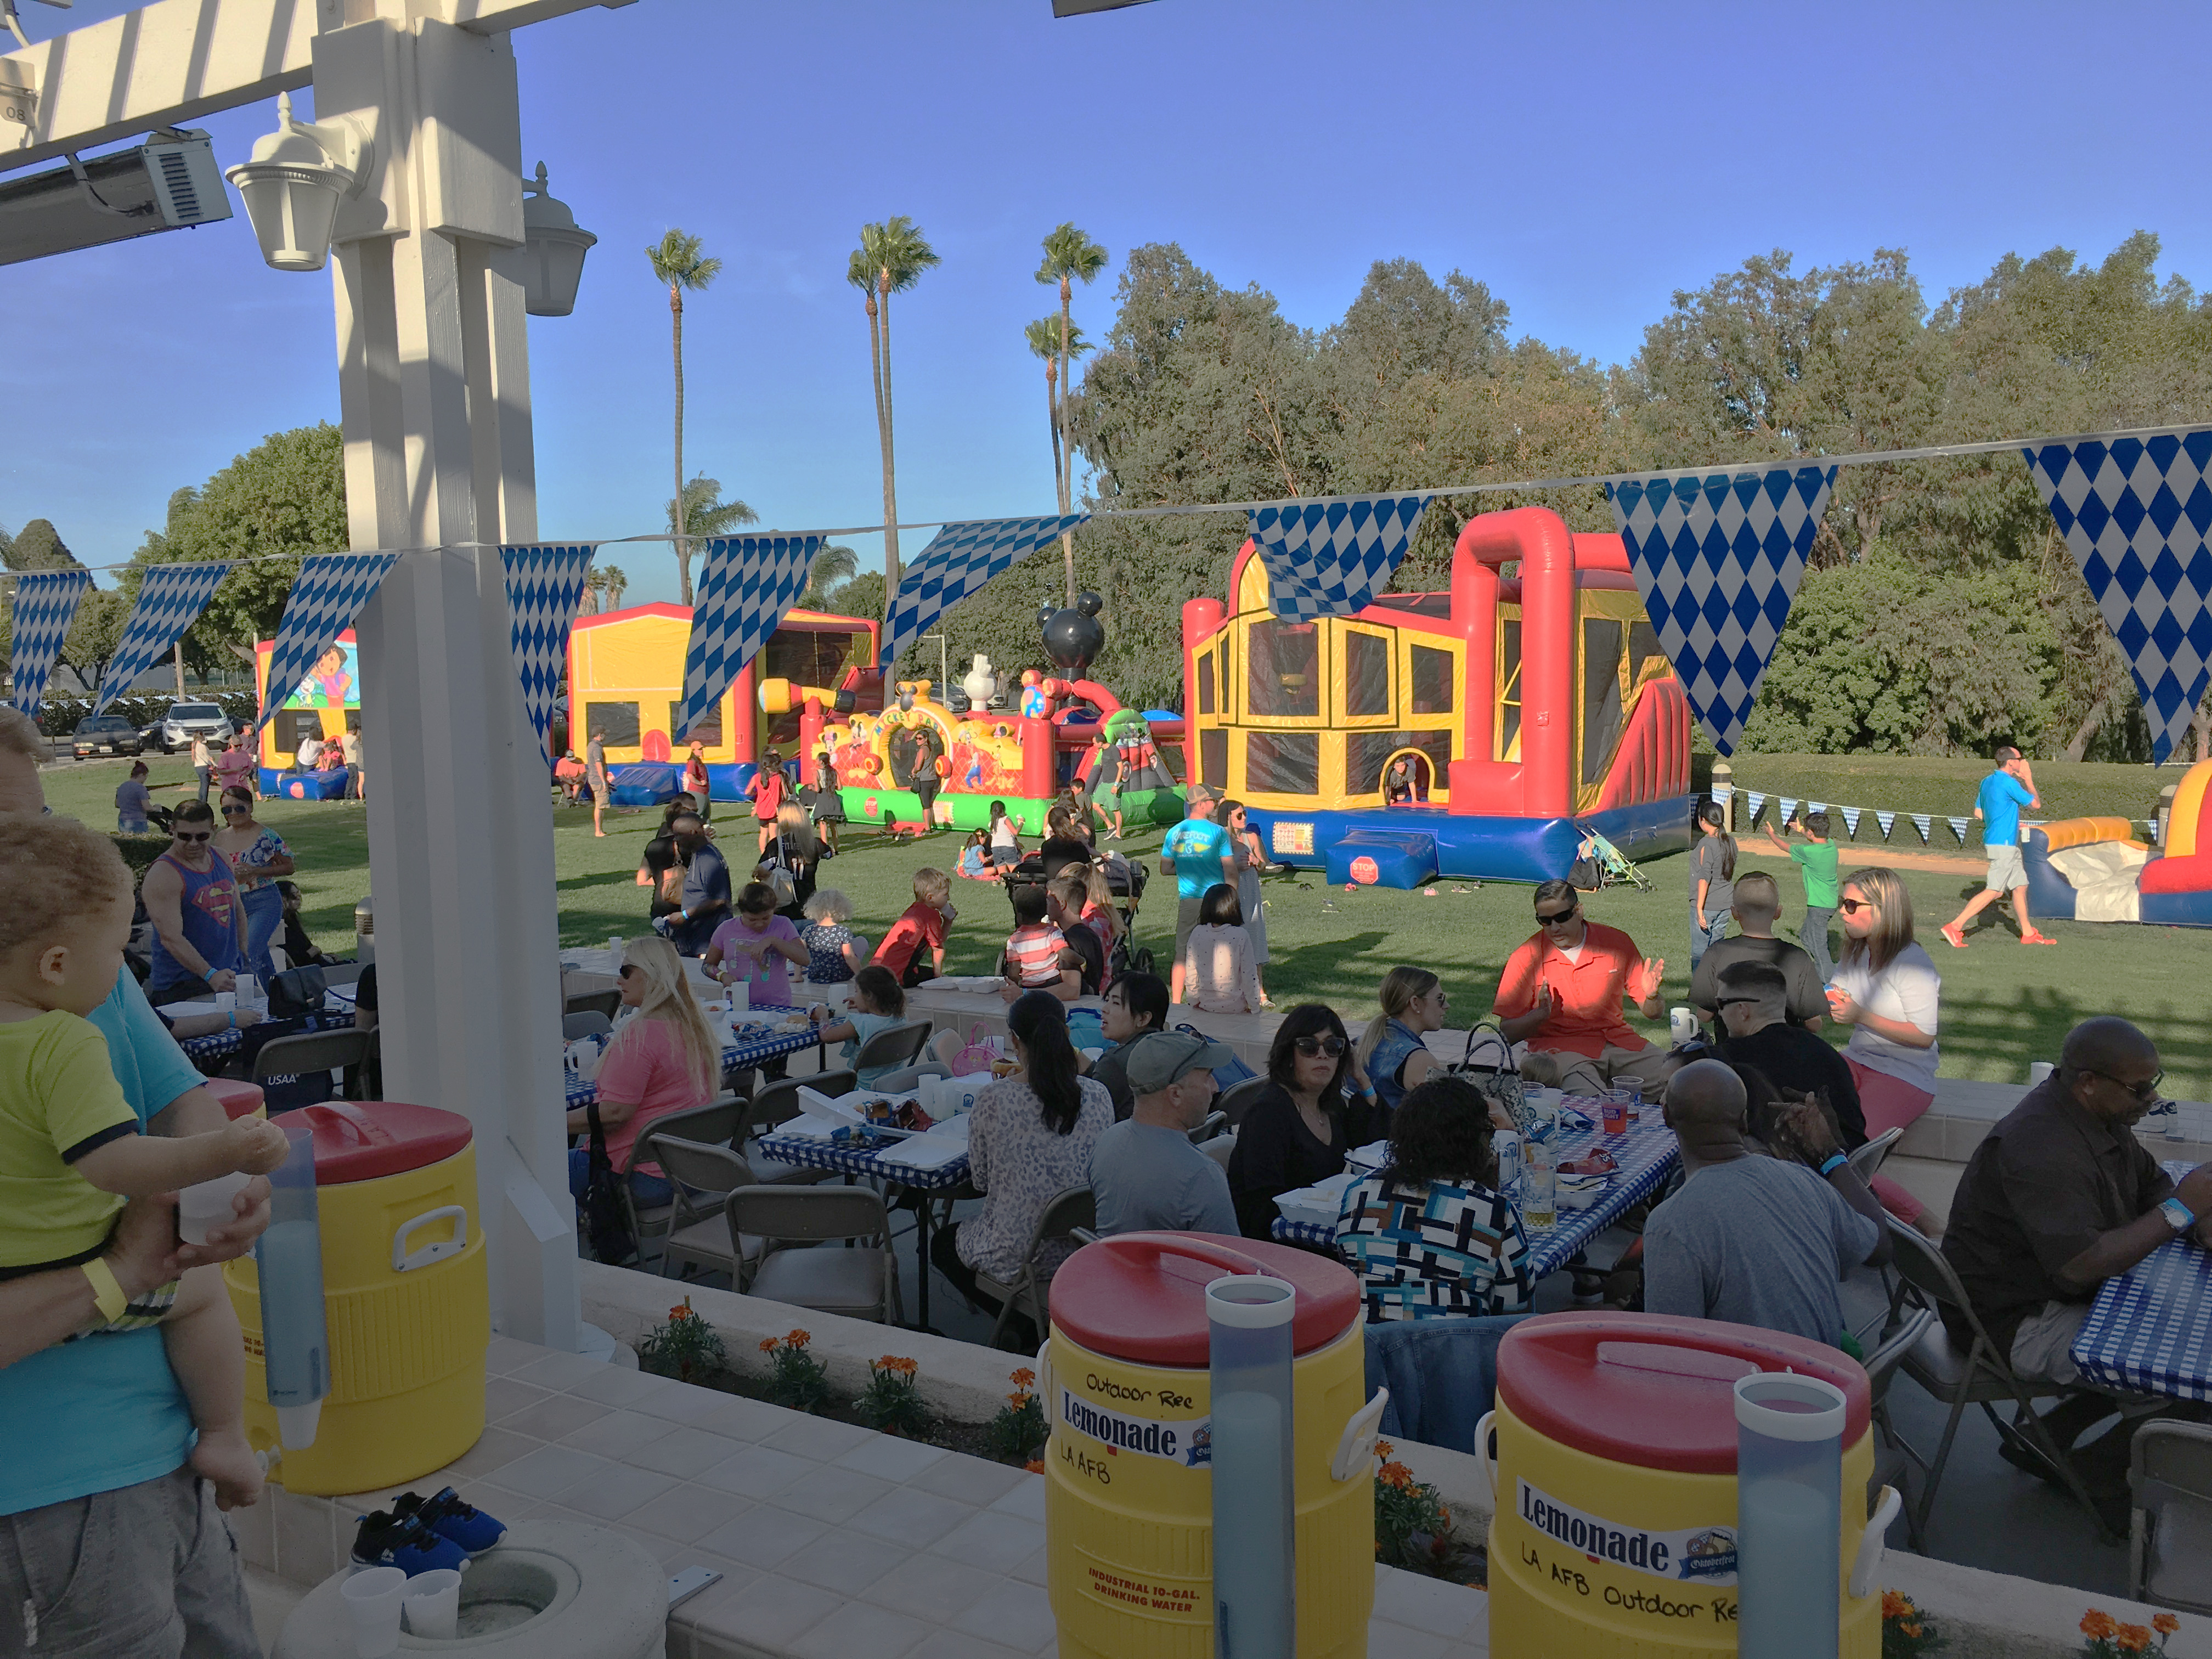 Los Angeles AFB hosts a community Oktoberfest!